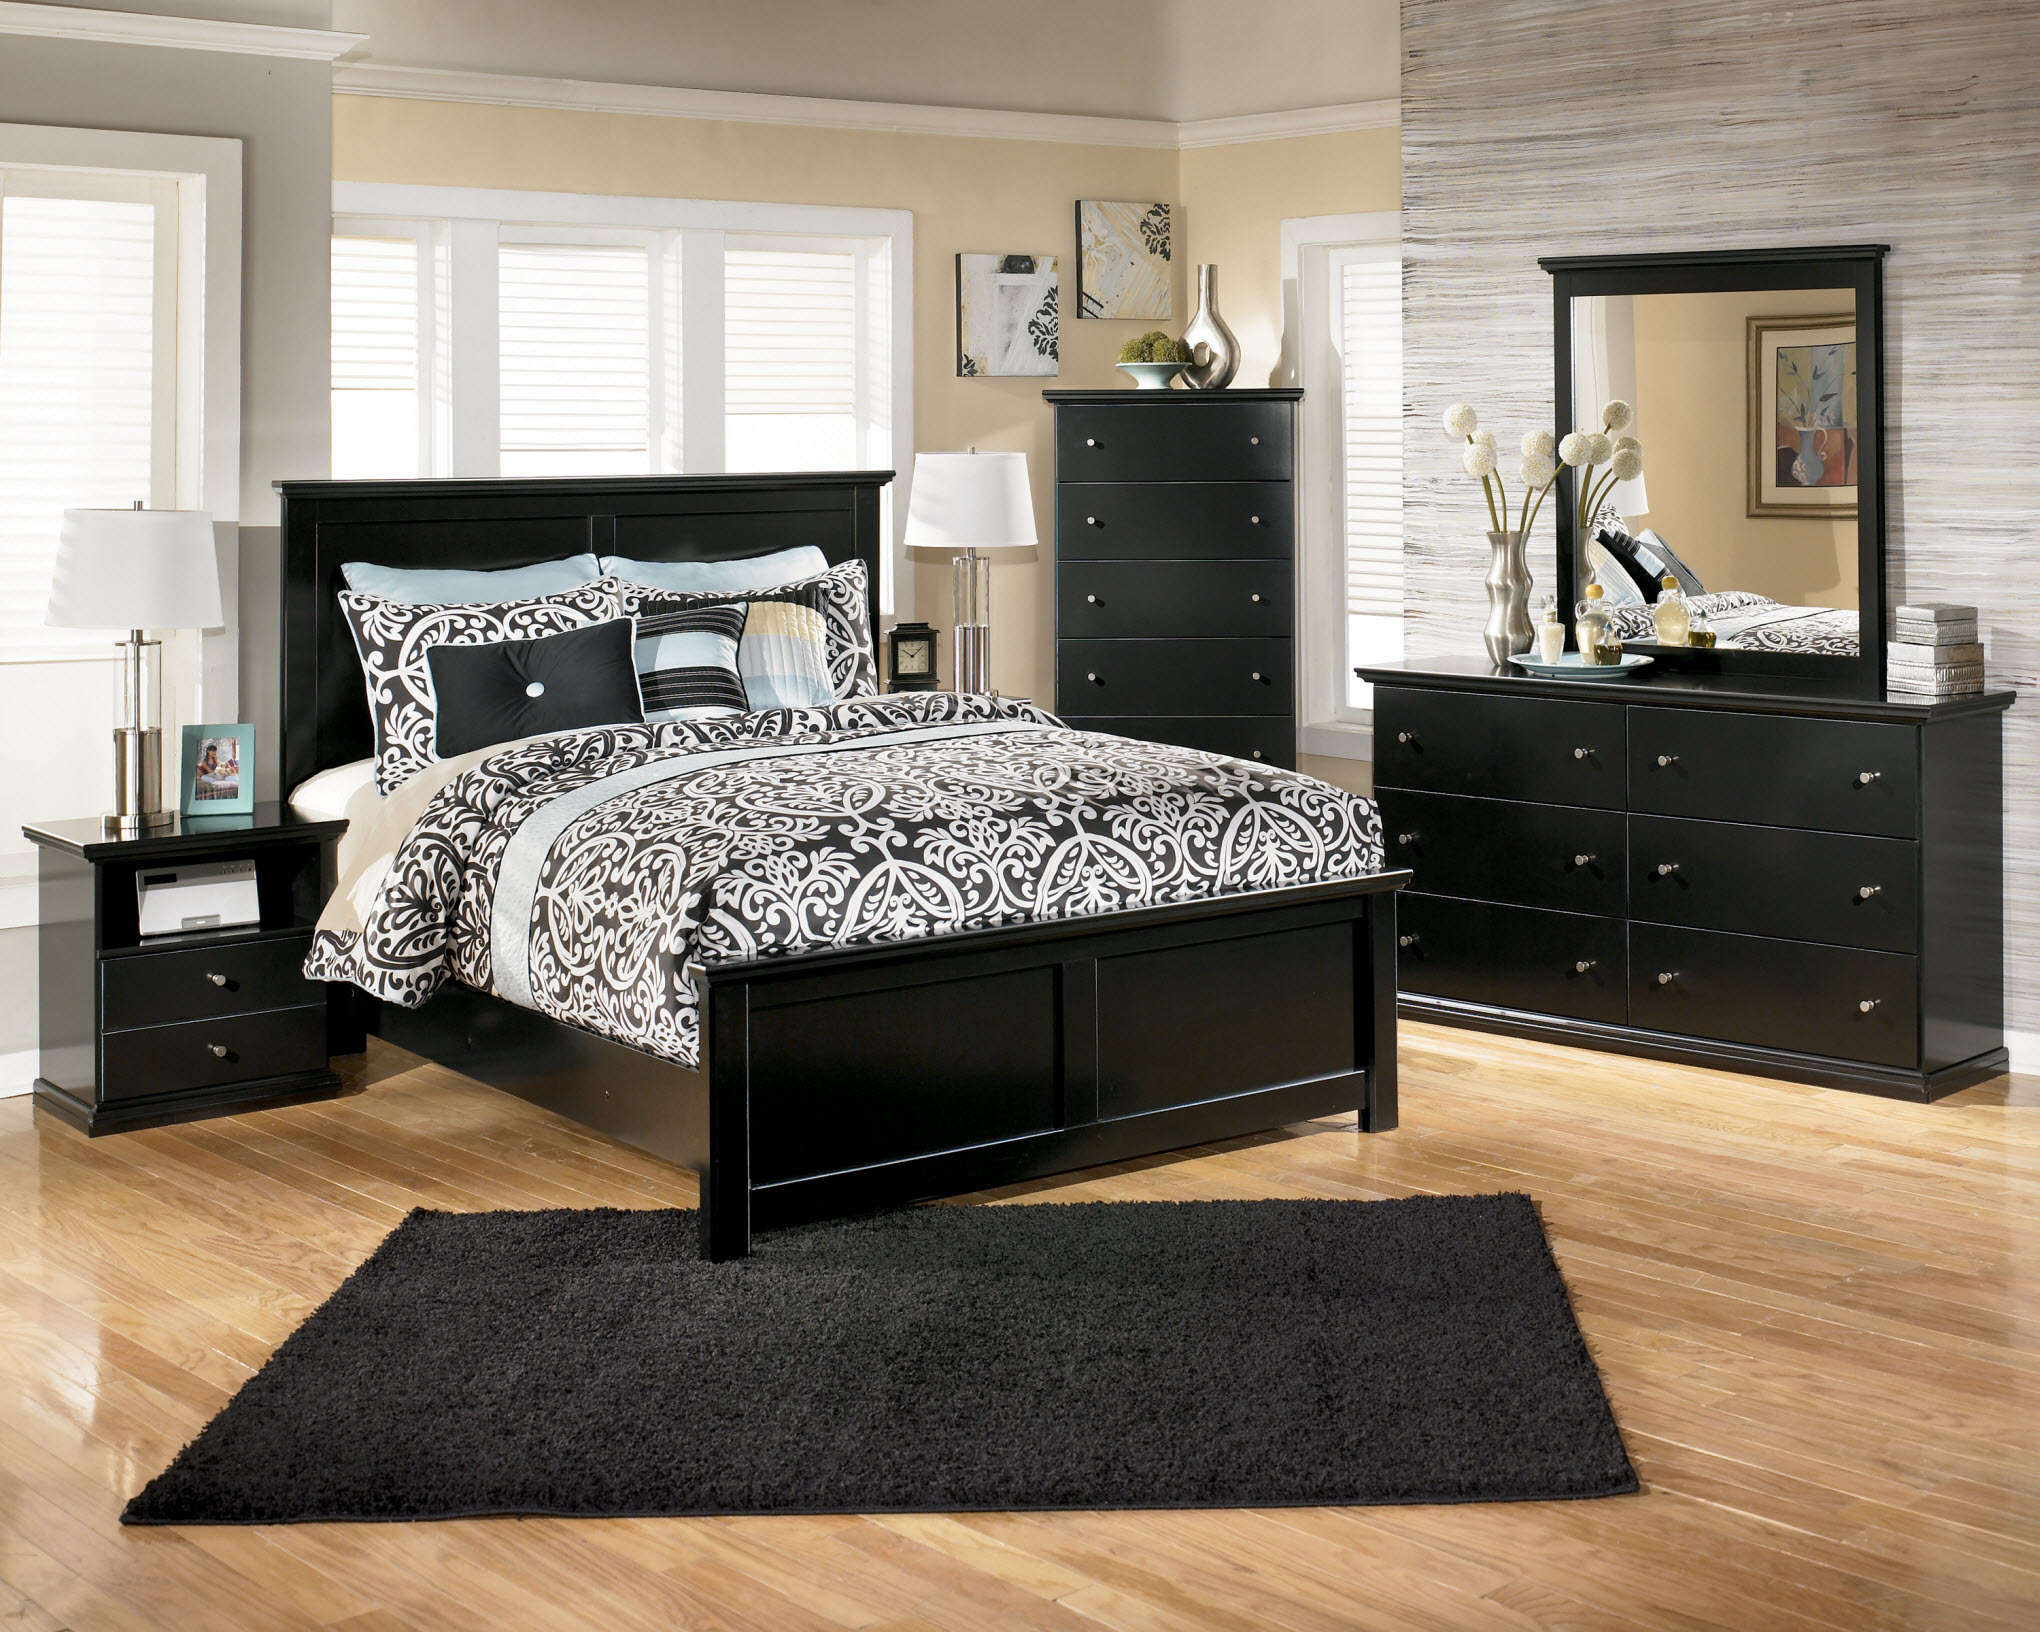 black and mirrored bedroom furniture photo - 6